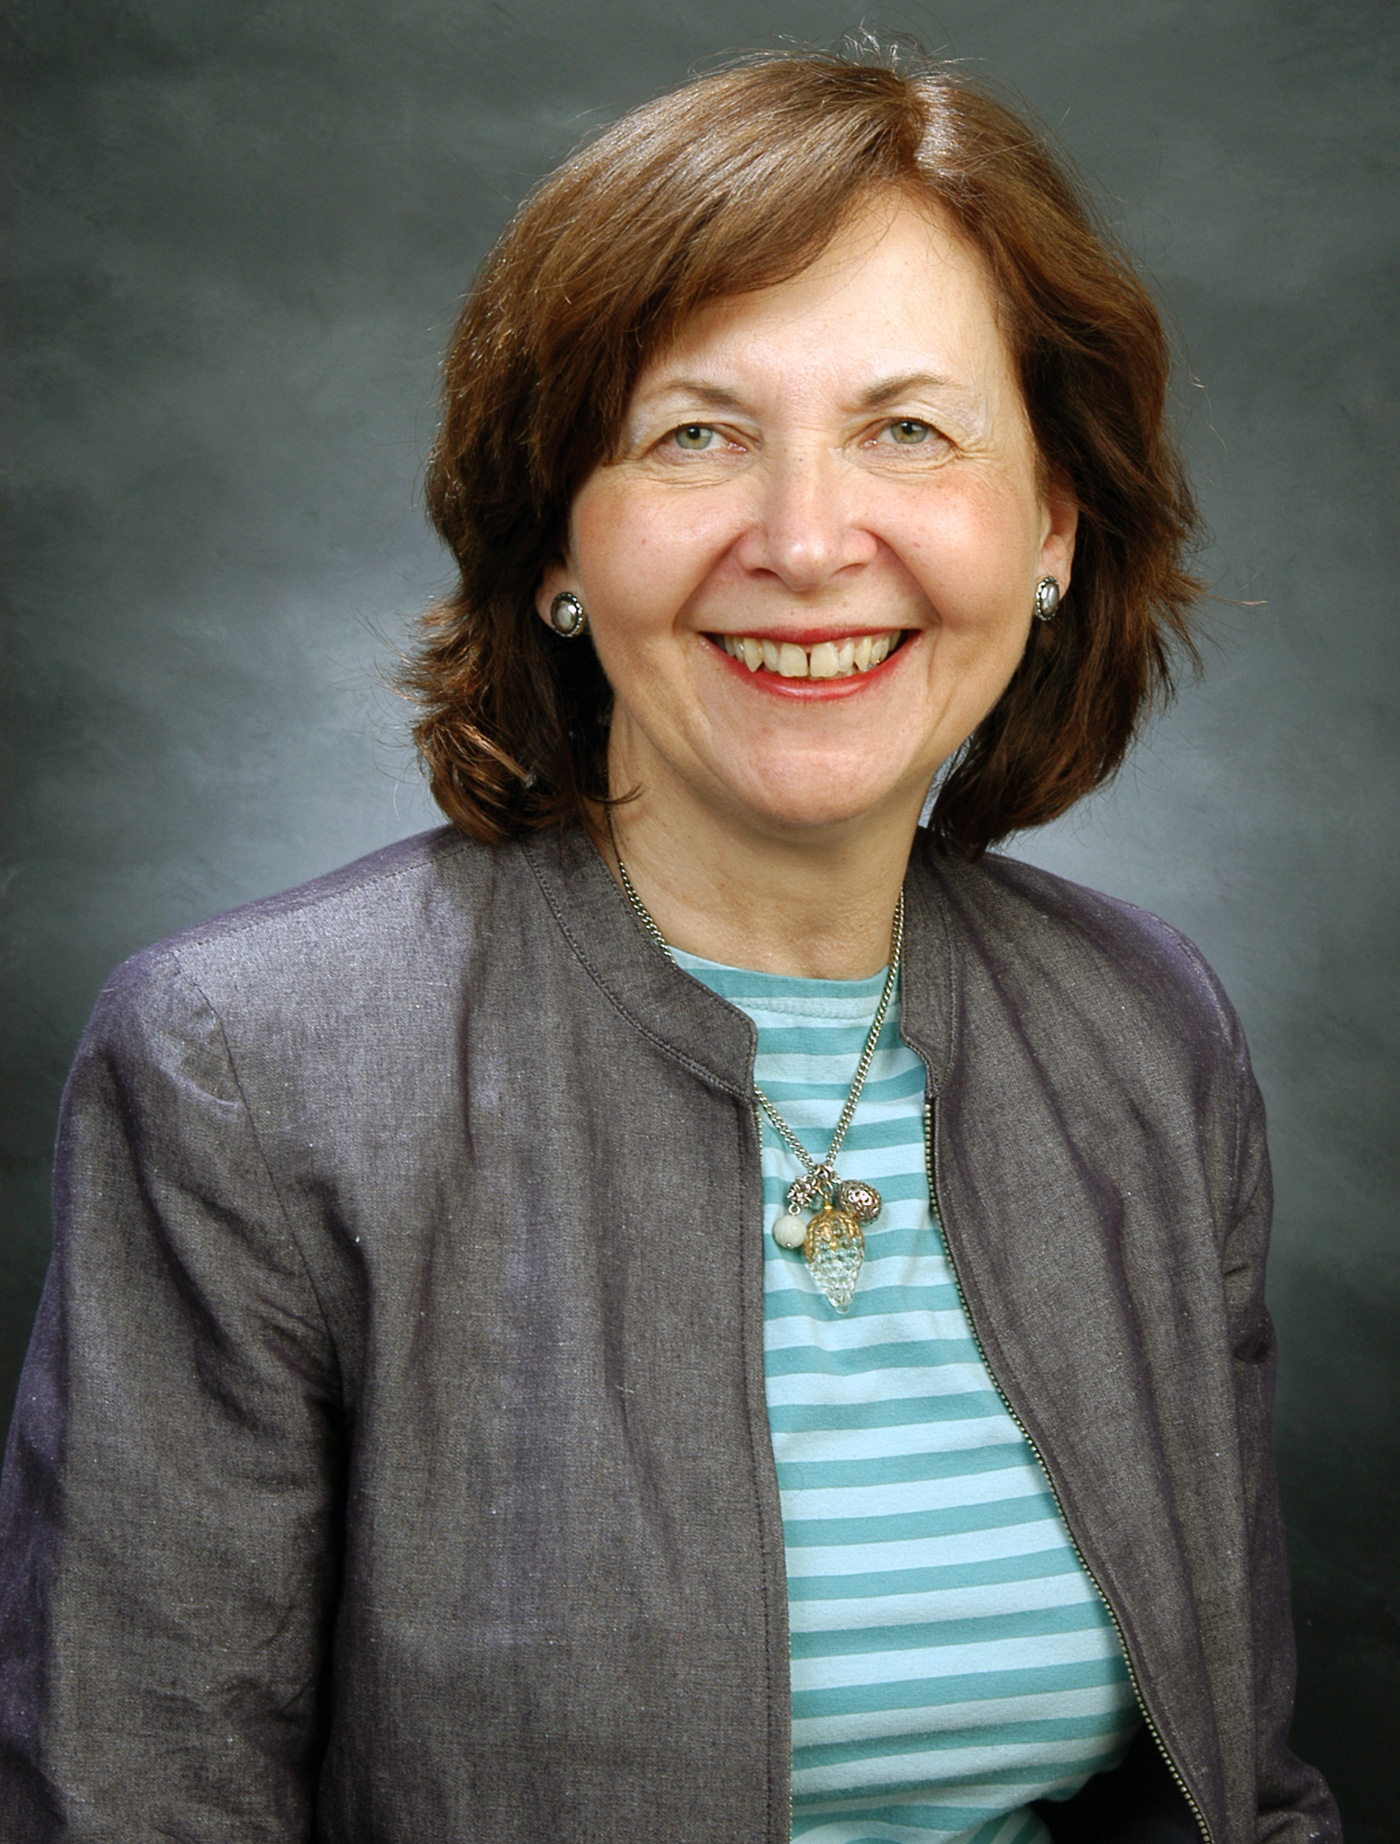 Carol McDonough is a Professor, MSP President in the Economics Department at UMass Lowell.